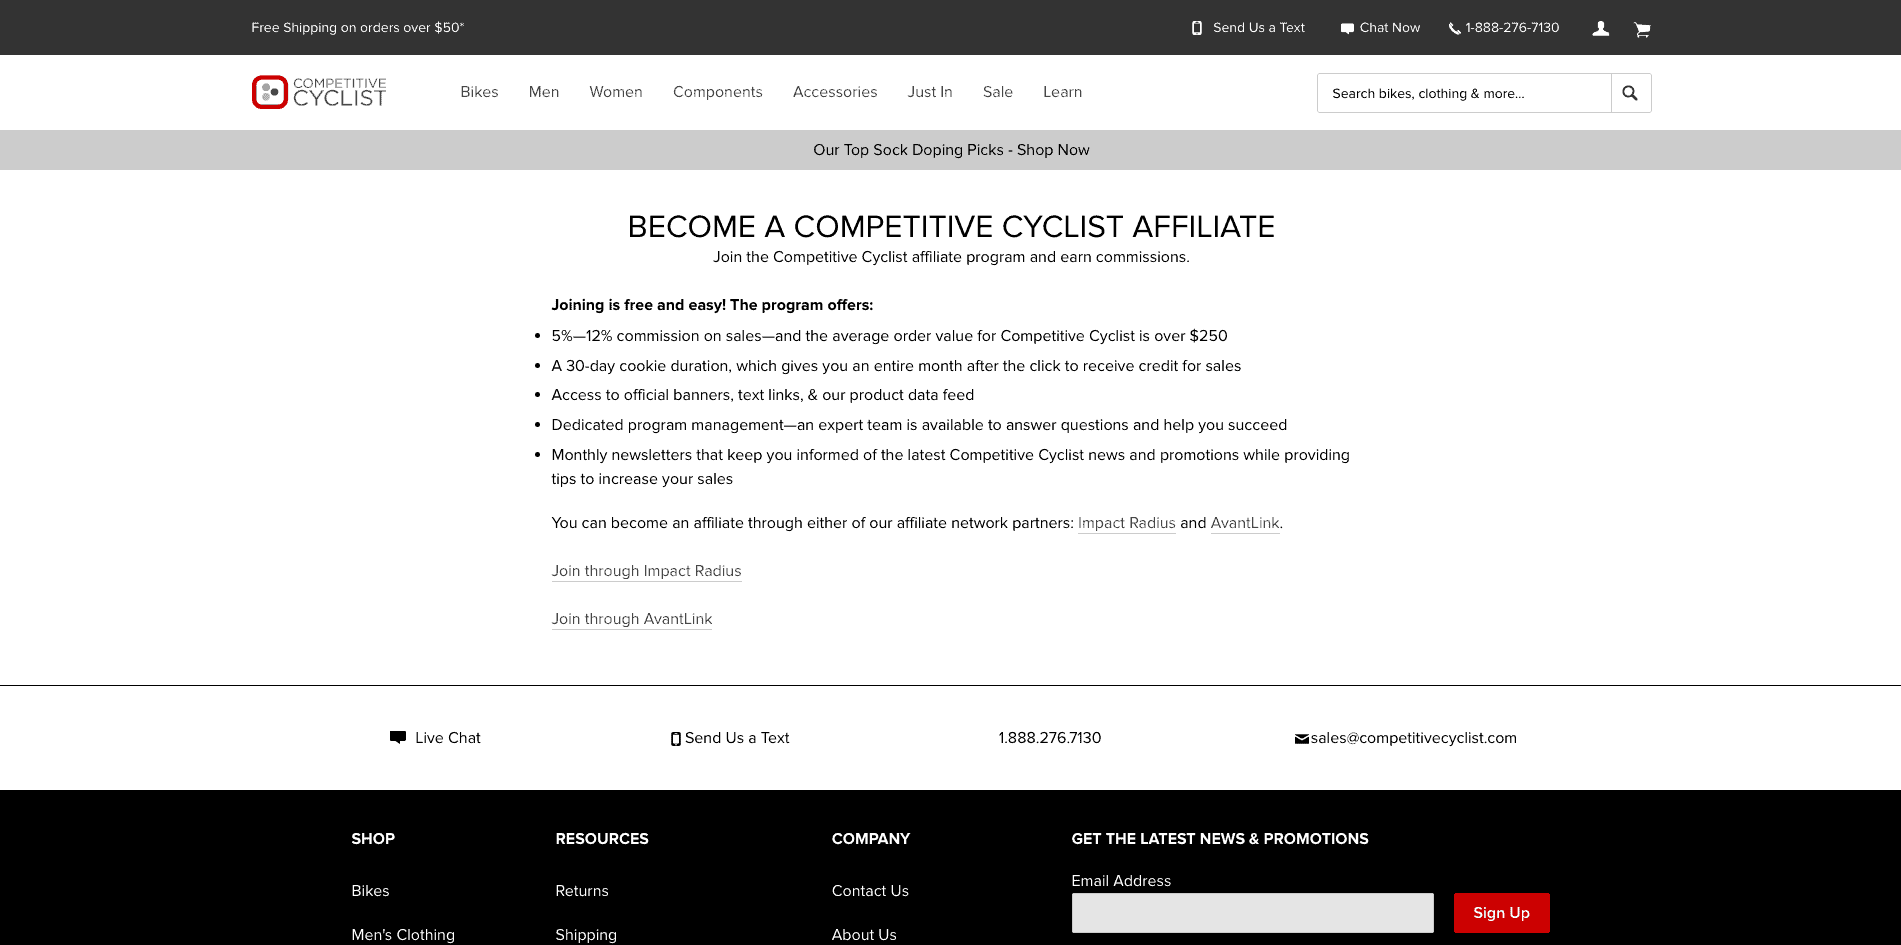 Competitive Cyclist affiliate program